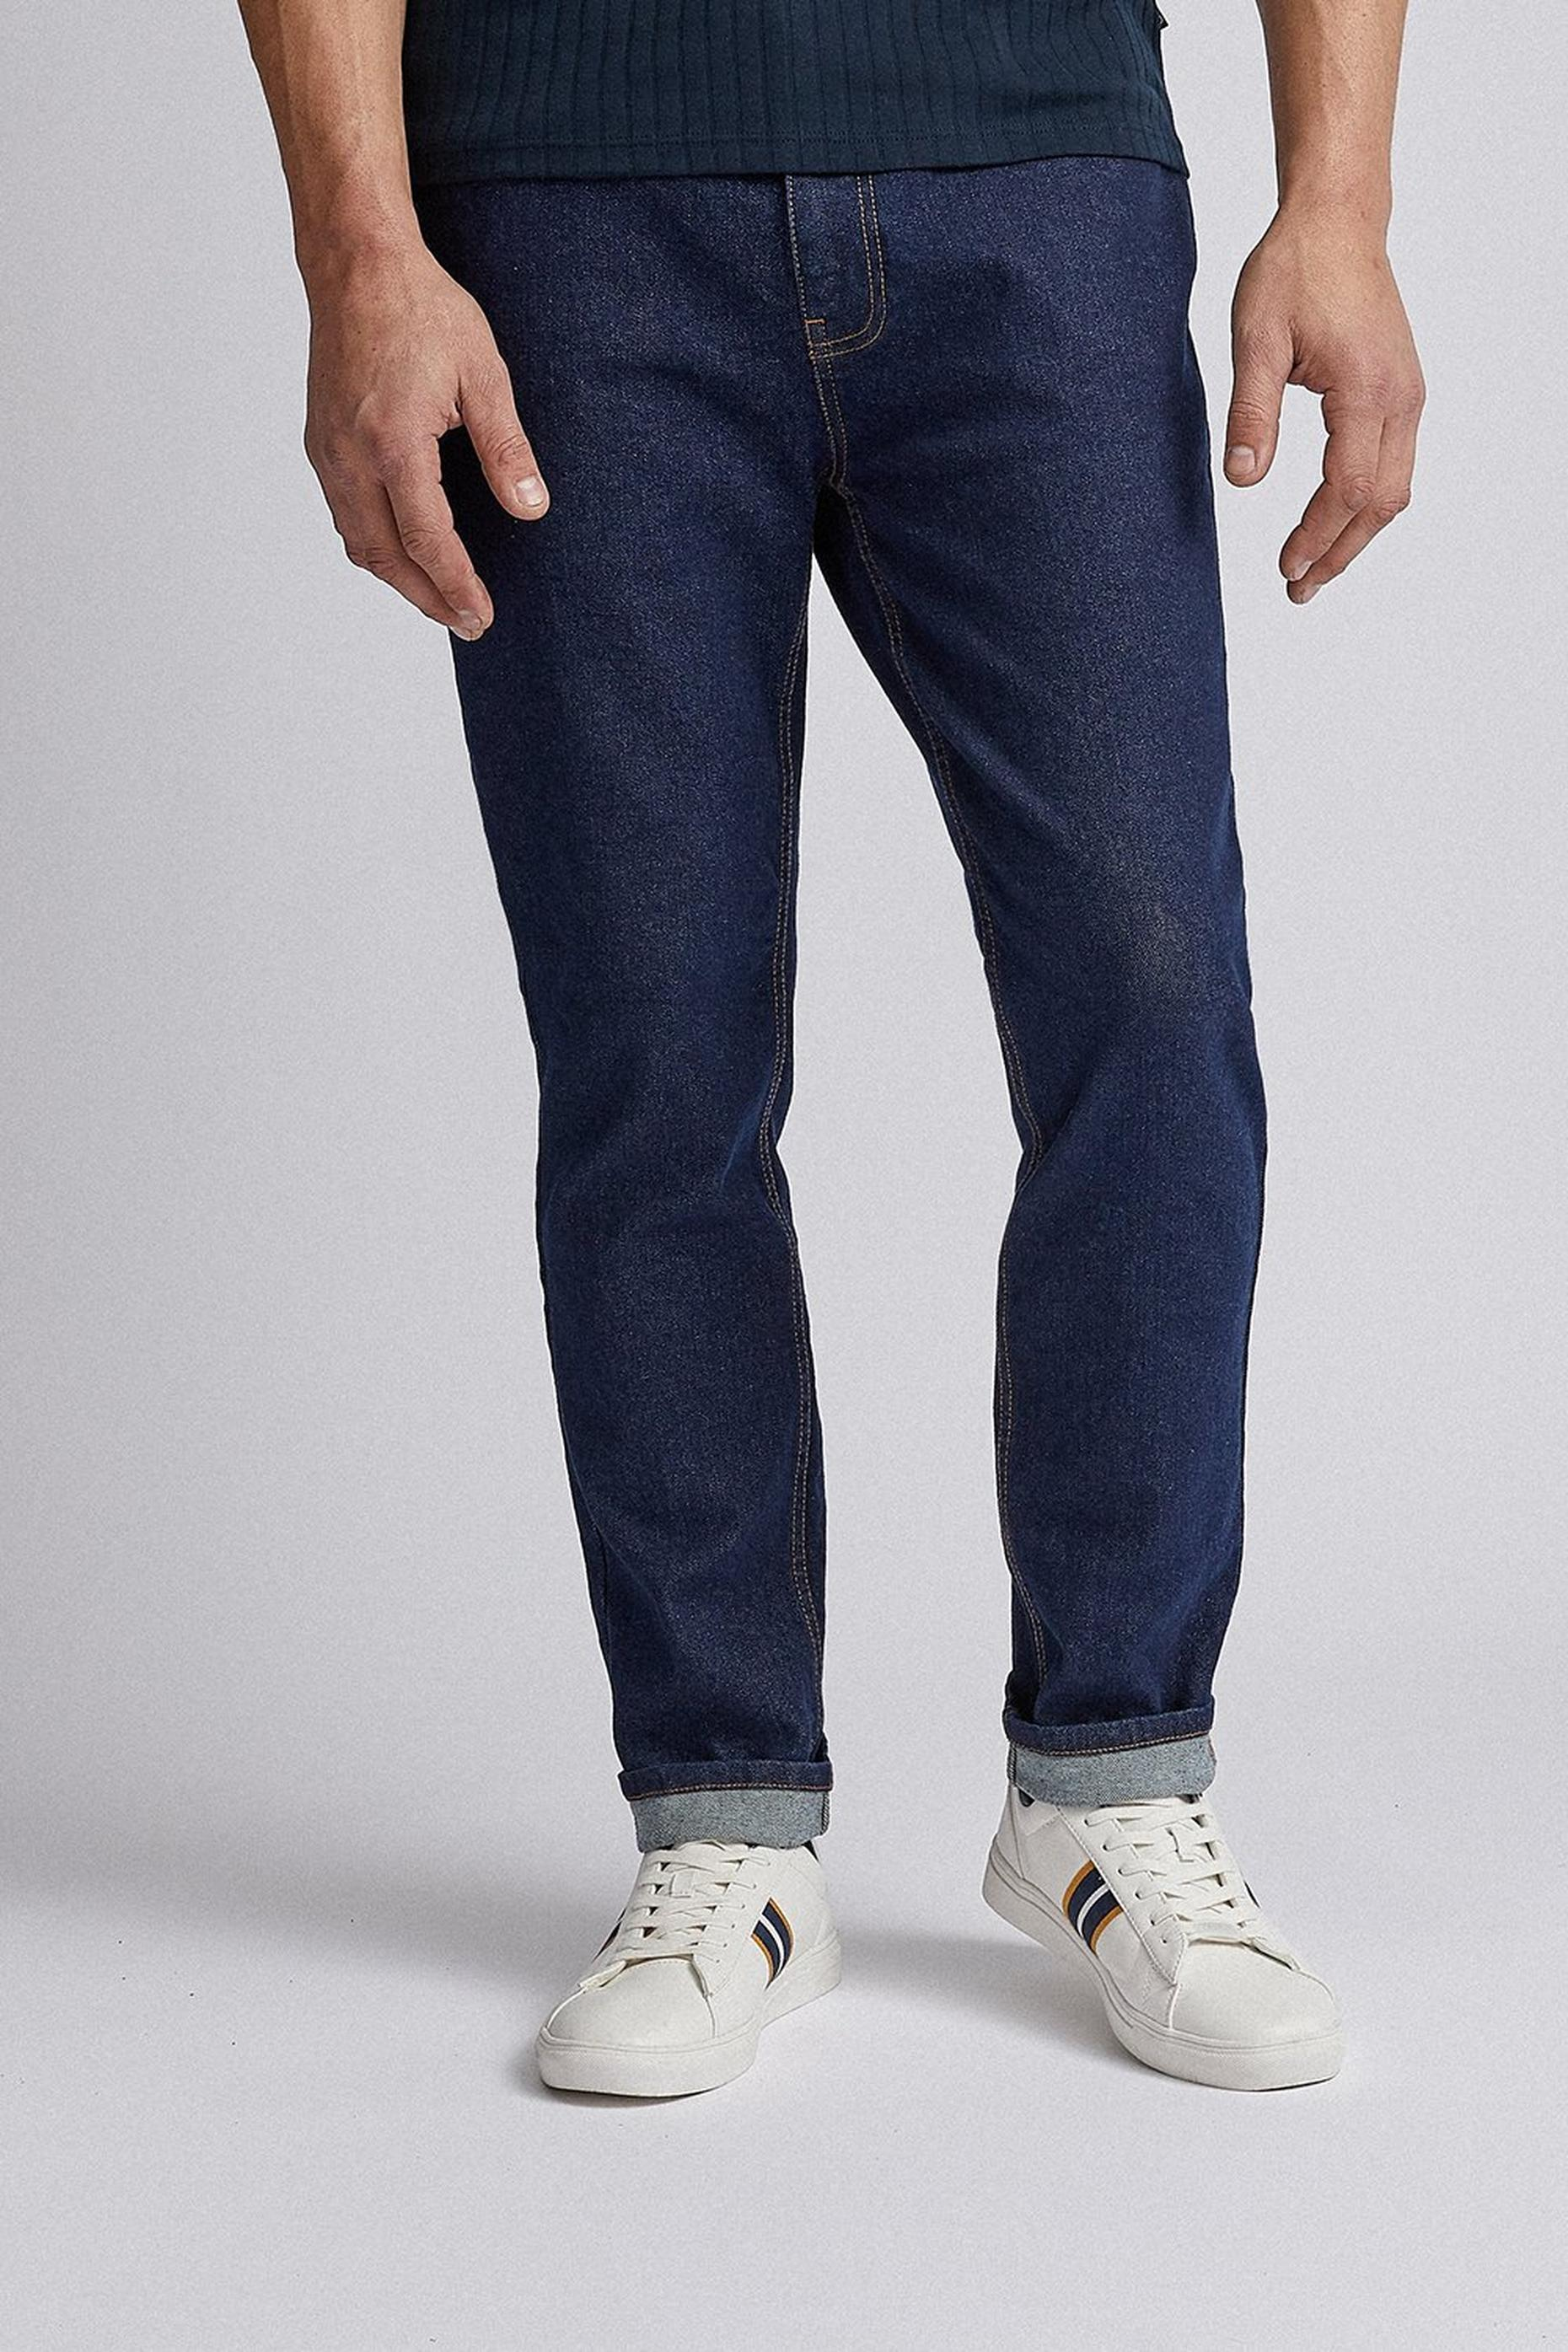 Tapered Rinse Organic Jeans